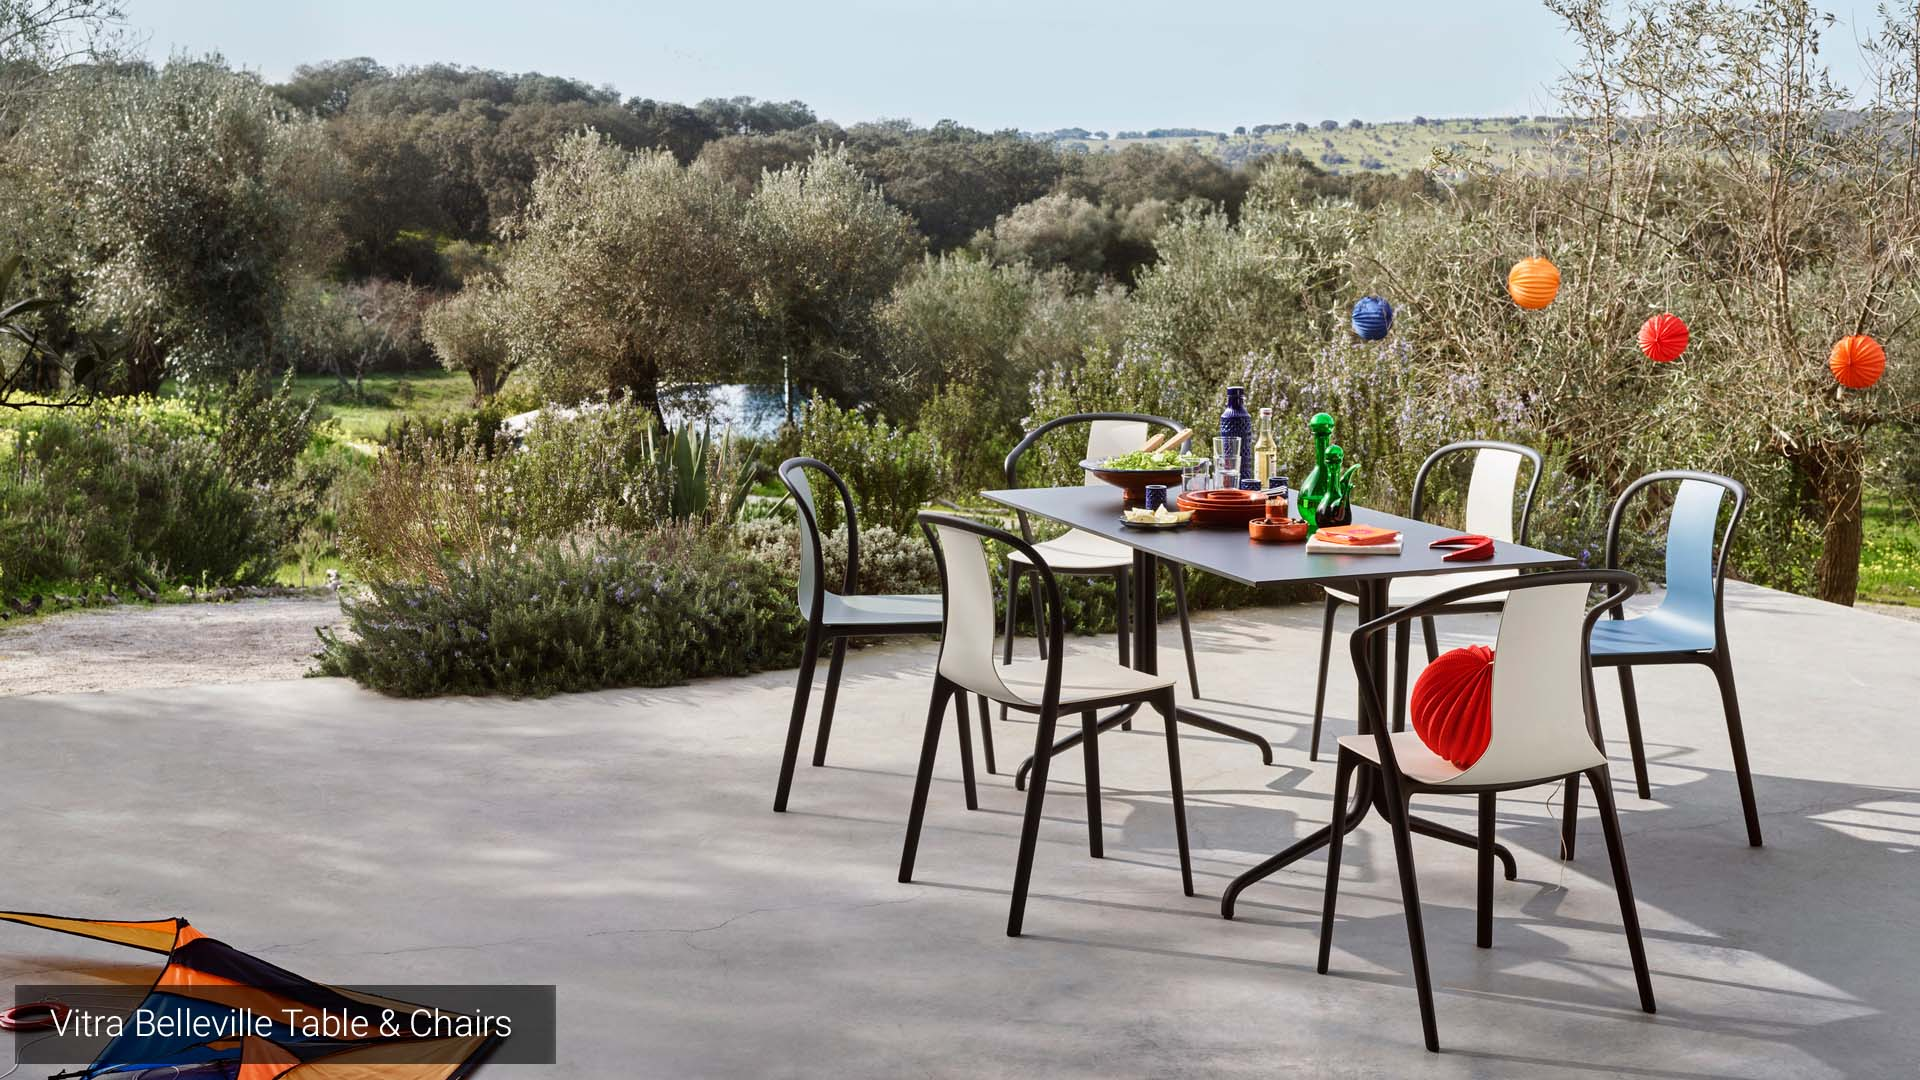 Vitra Belleville Table & Chairs